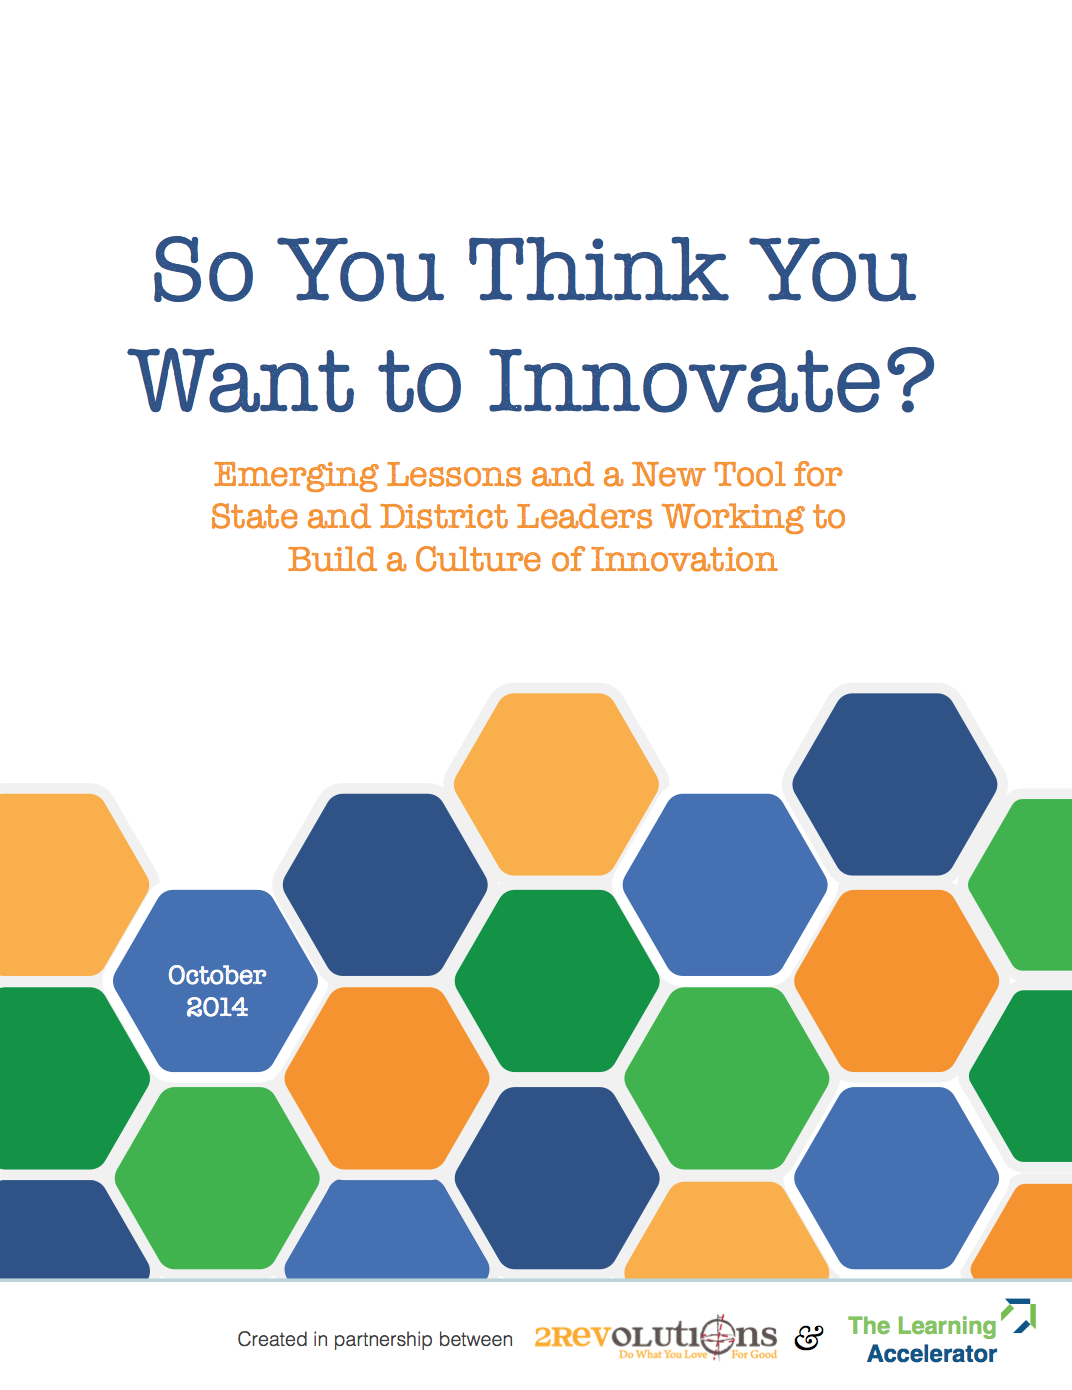 so you think you want to innovate? building a culture of innovation in k-12, october 2014